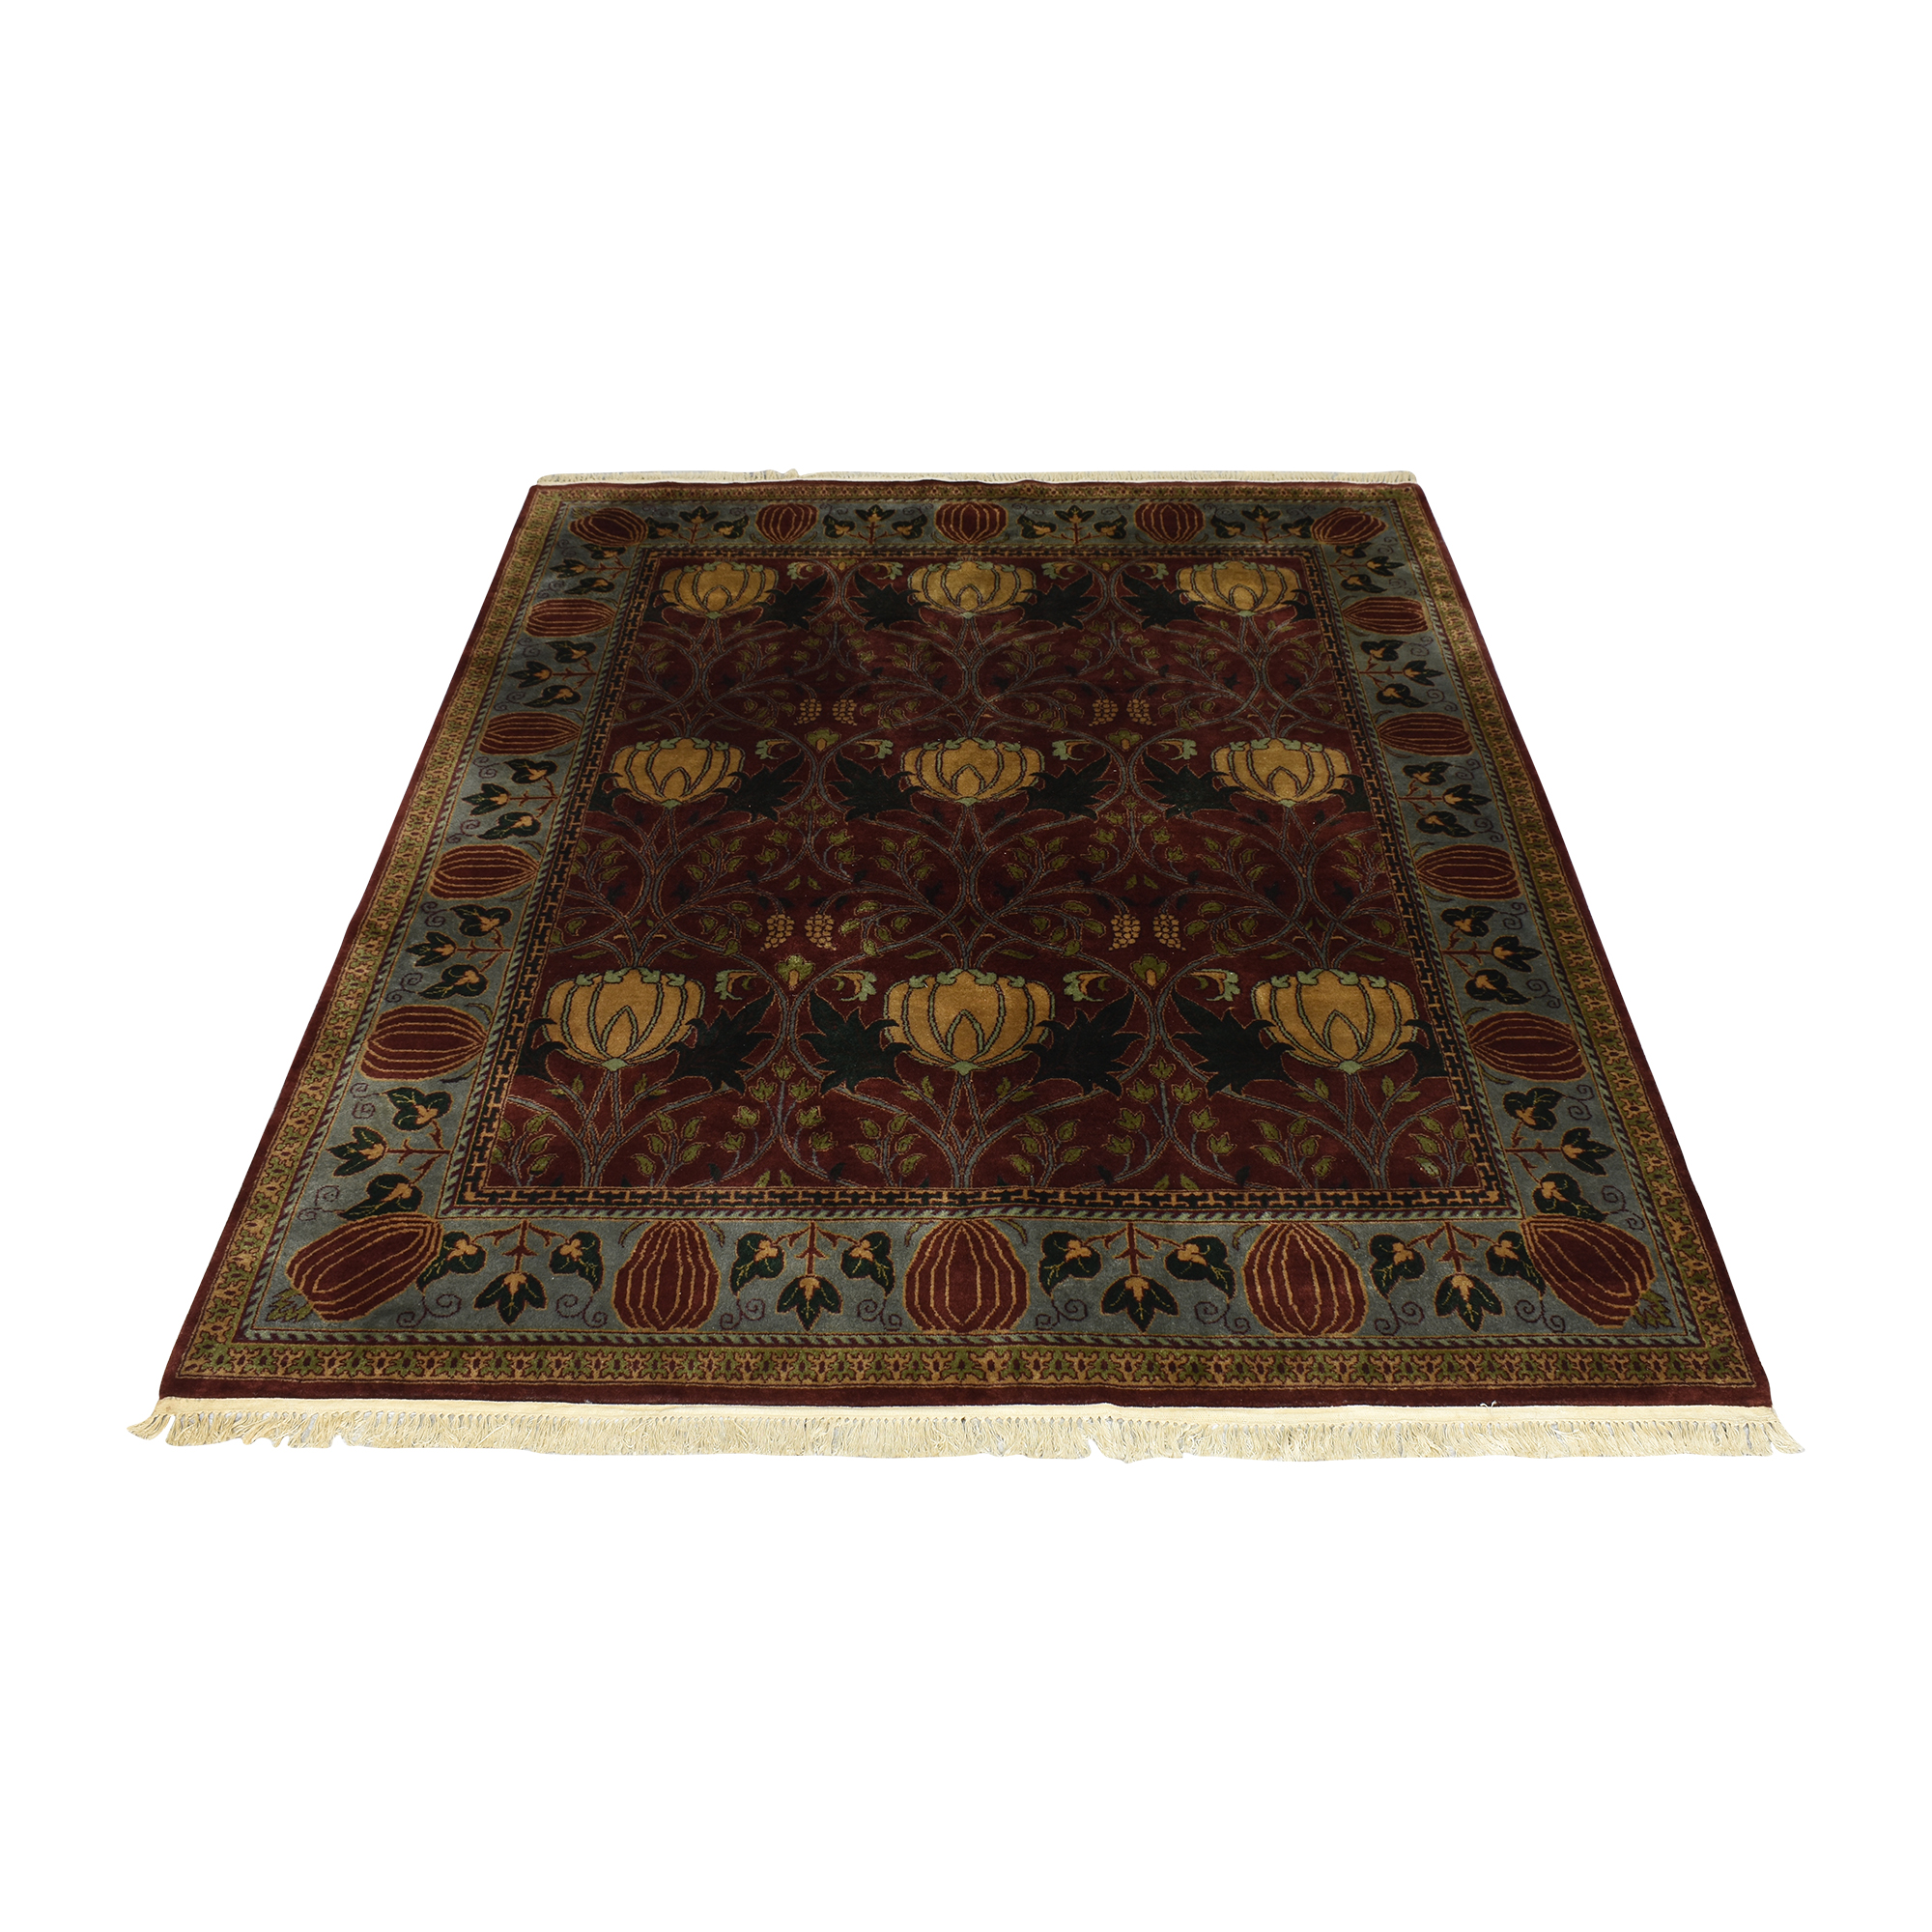 Patterned Area Rug with Fringe discount